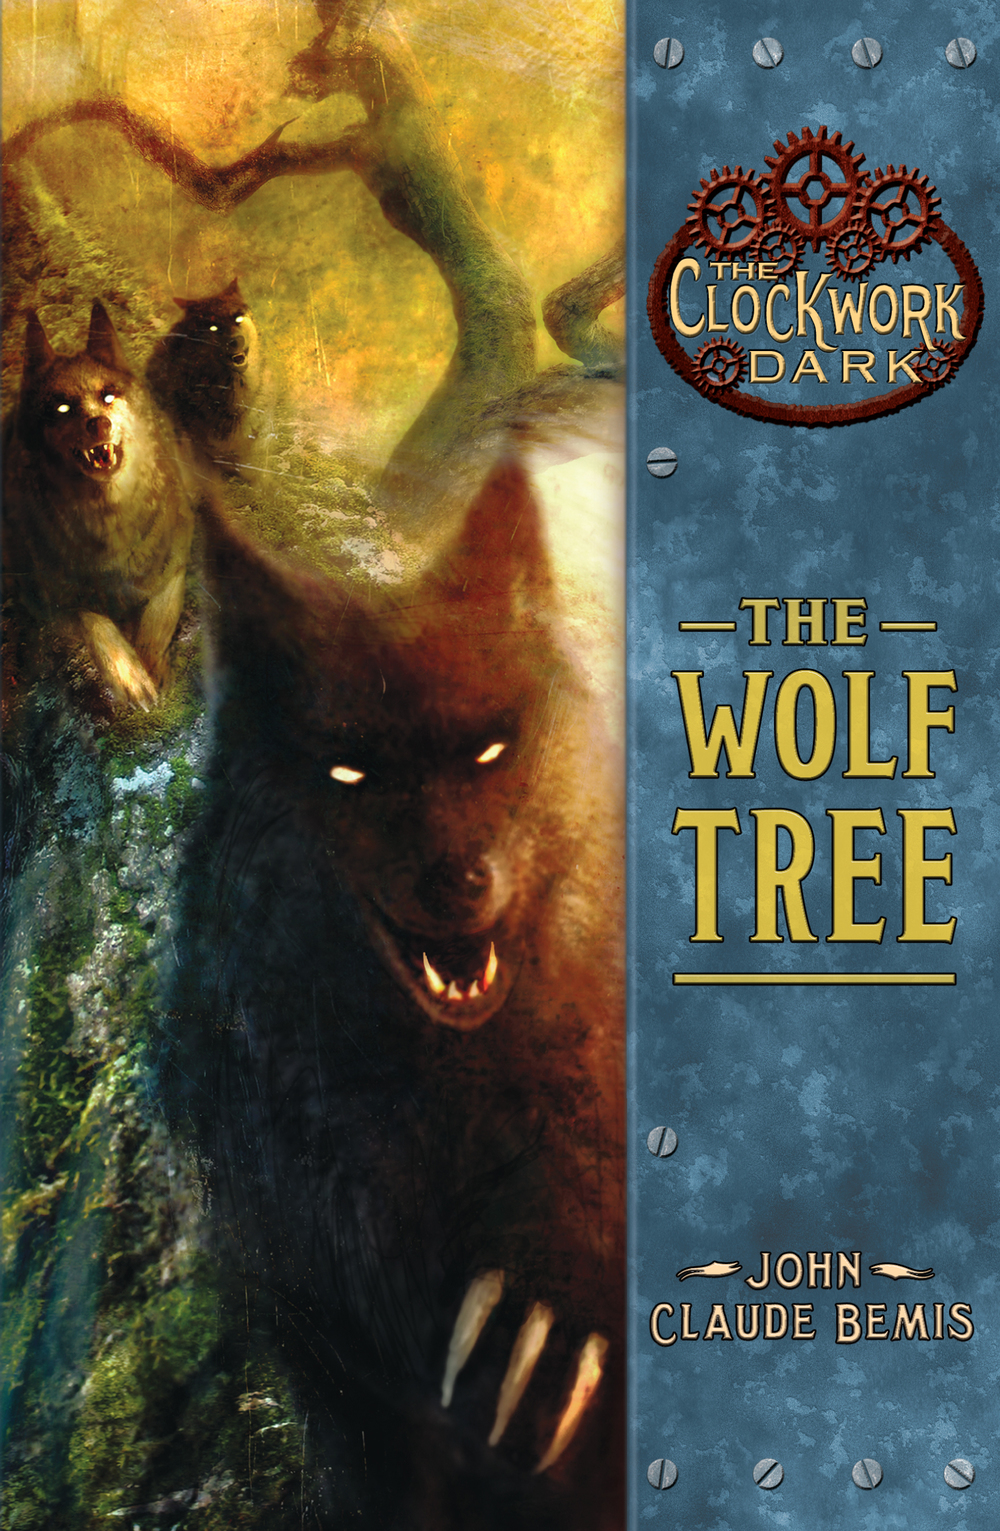 Book Two - The Wolf Tree